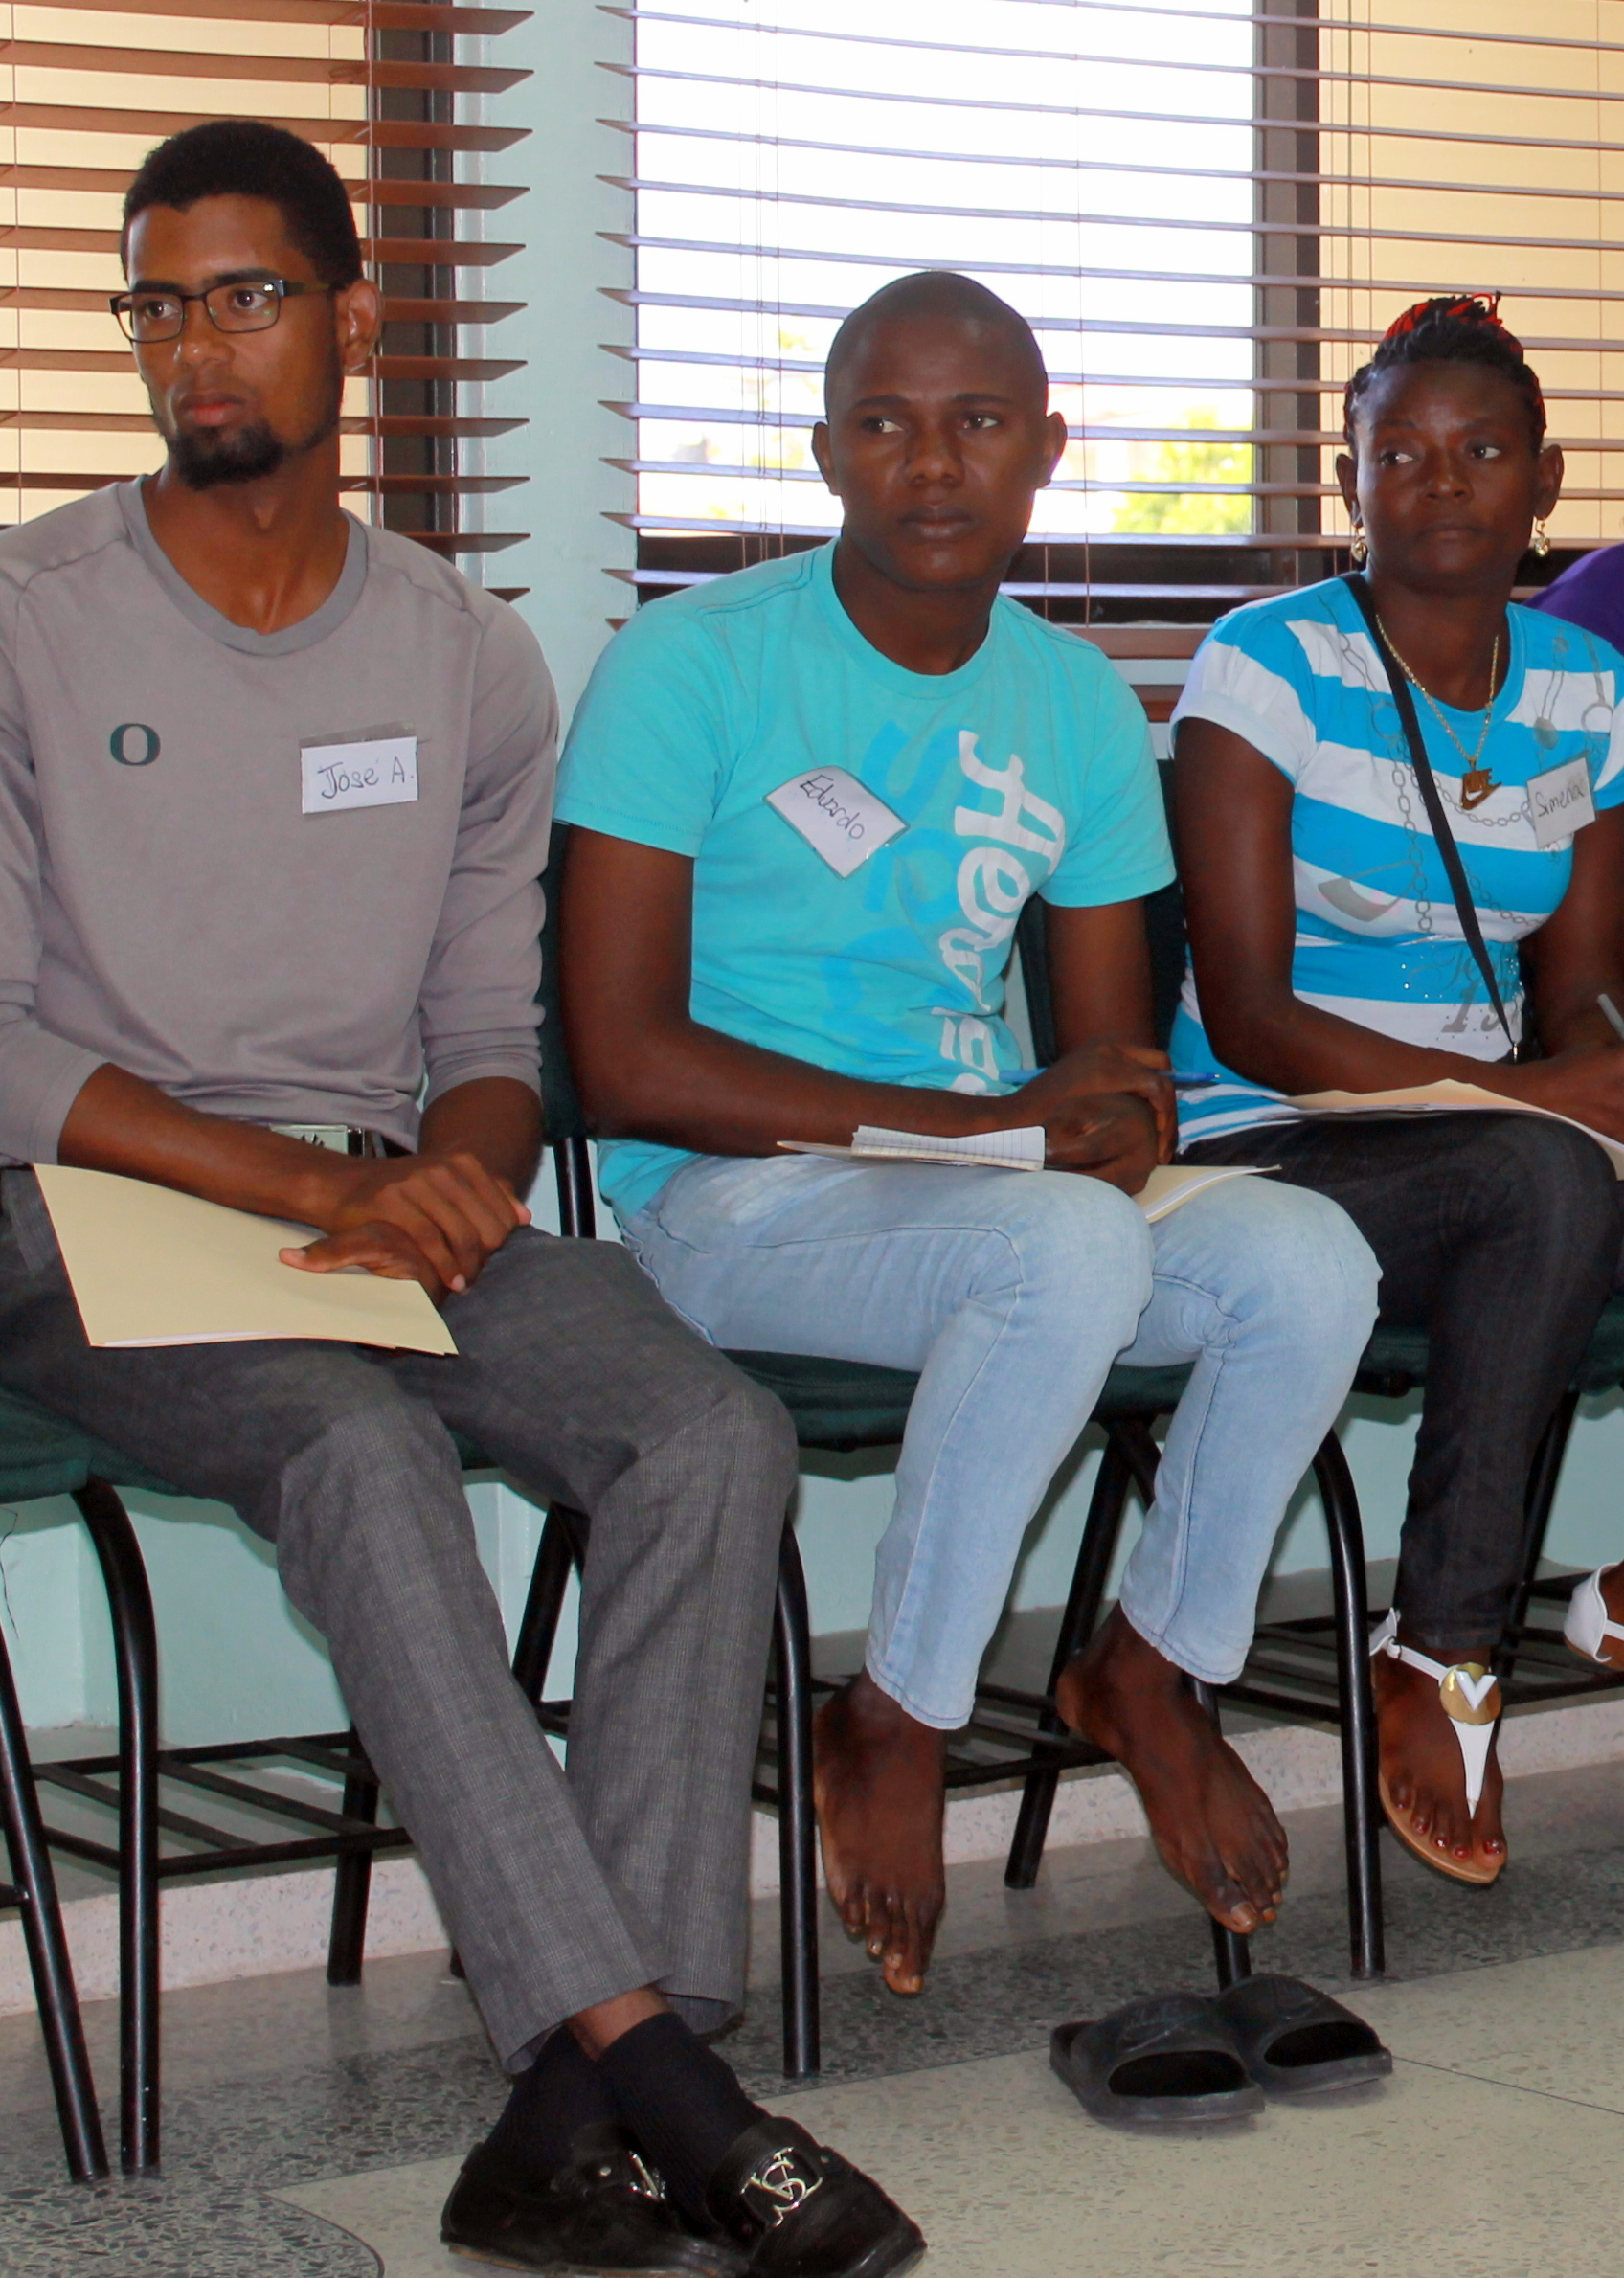 José (far left) from Batey 7 participating in a workshop with two new members of the Batey 7 committee in August 2017. José took advantage of a break from his studies at the Adventist University to receive CHE training (Training for Trainers 1) together with Eduardo (center) and Simena (far left).